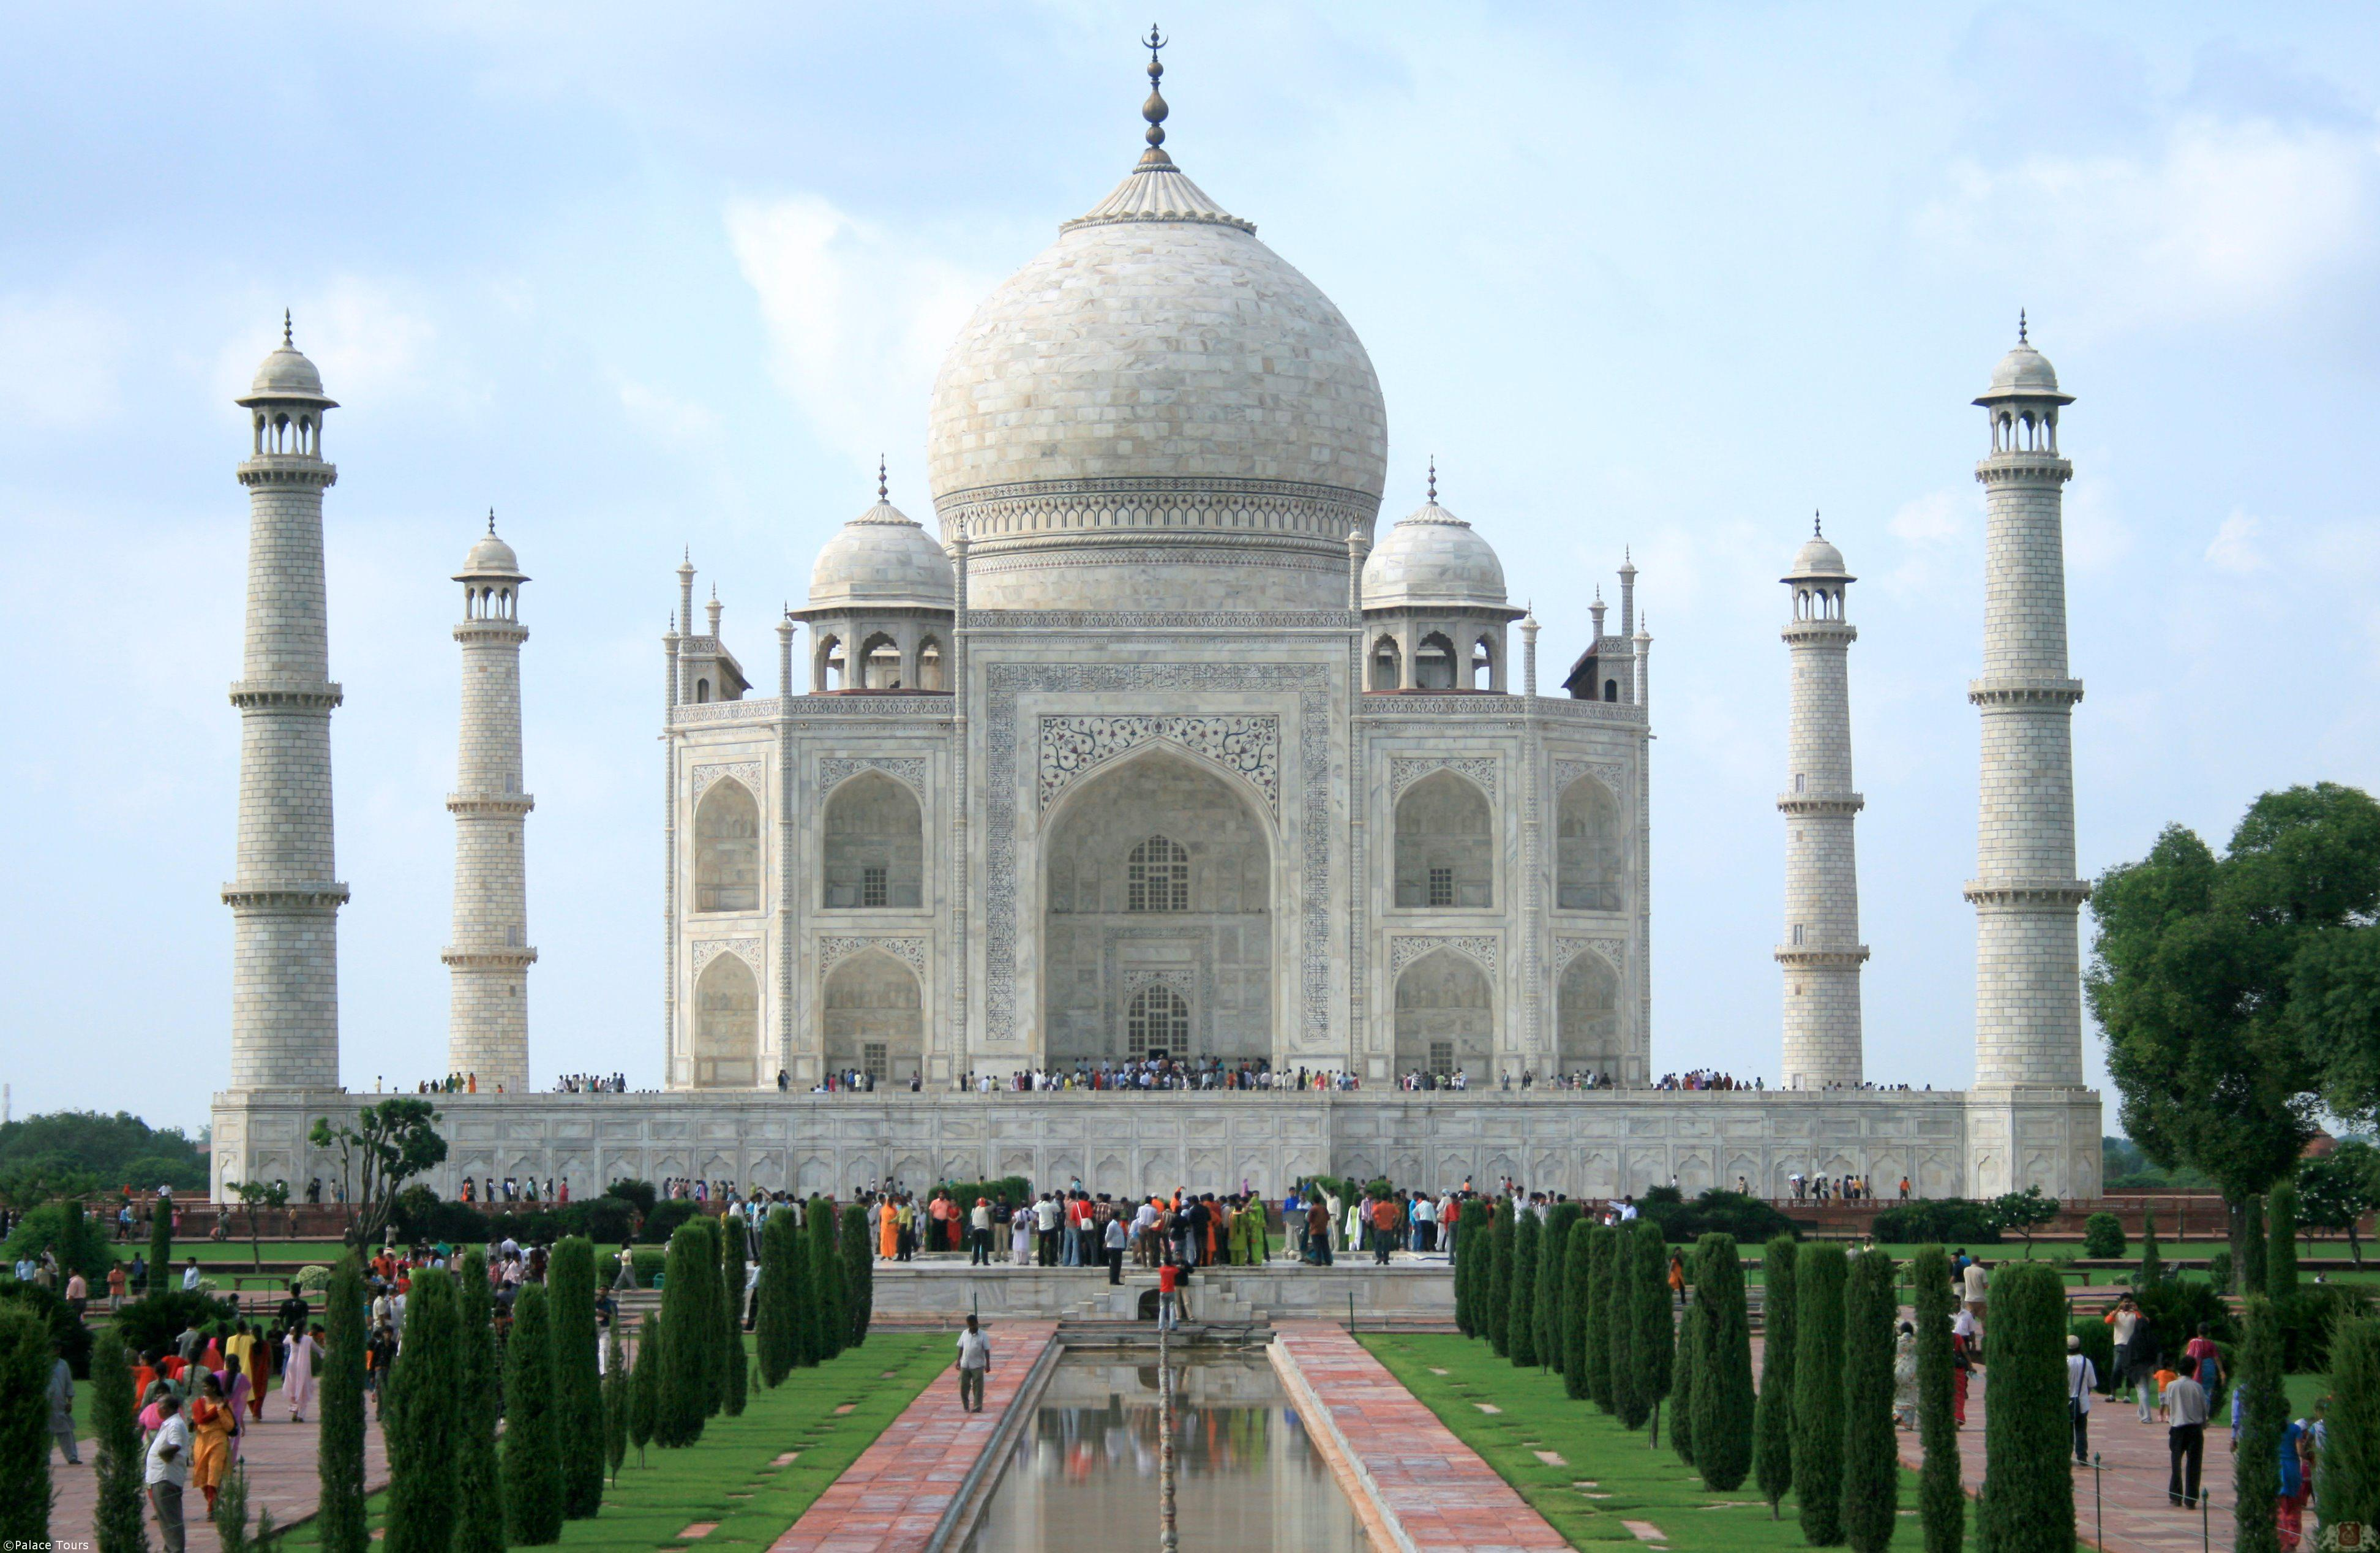 Private tour to the taj mahal in agra brought to you by Indian building photos